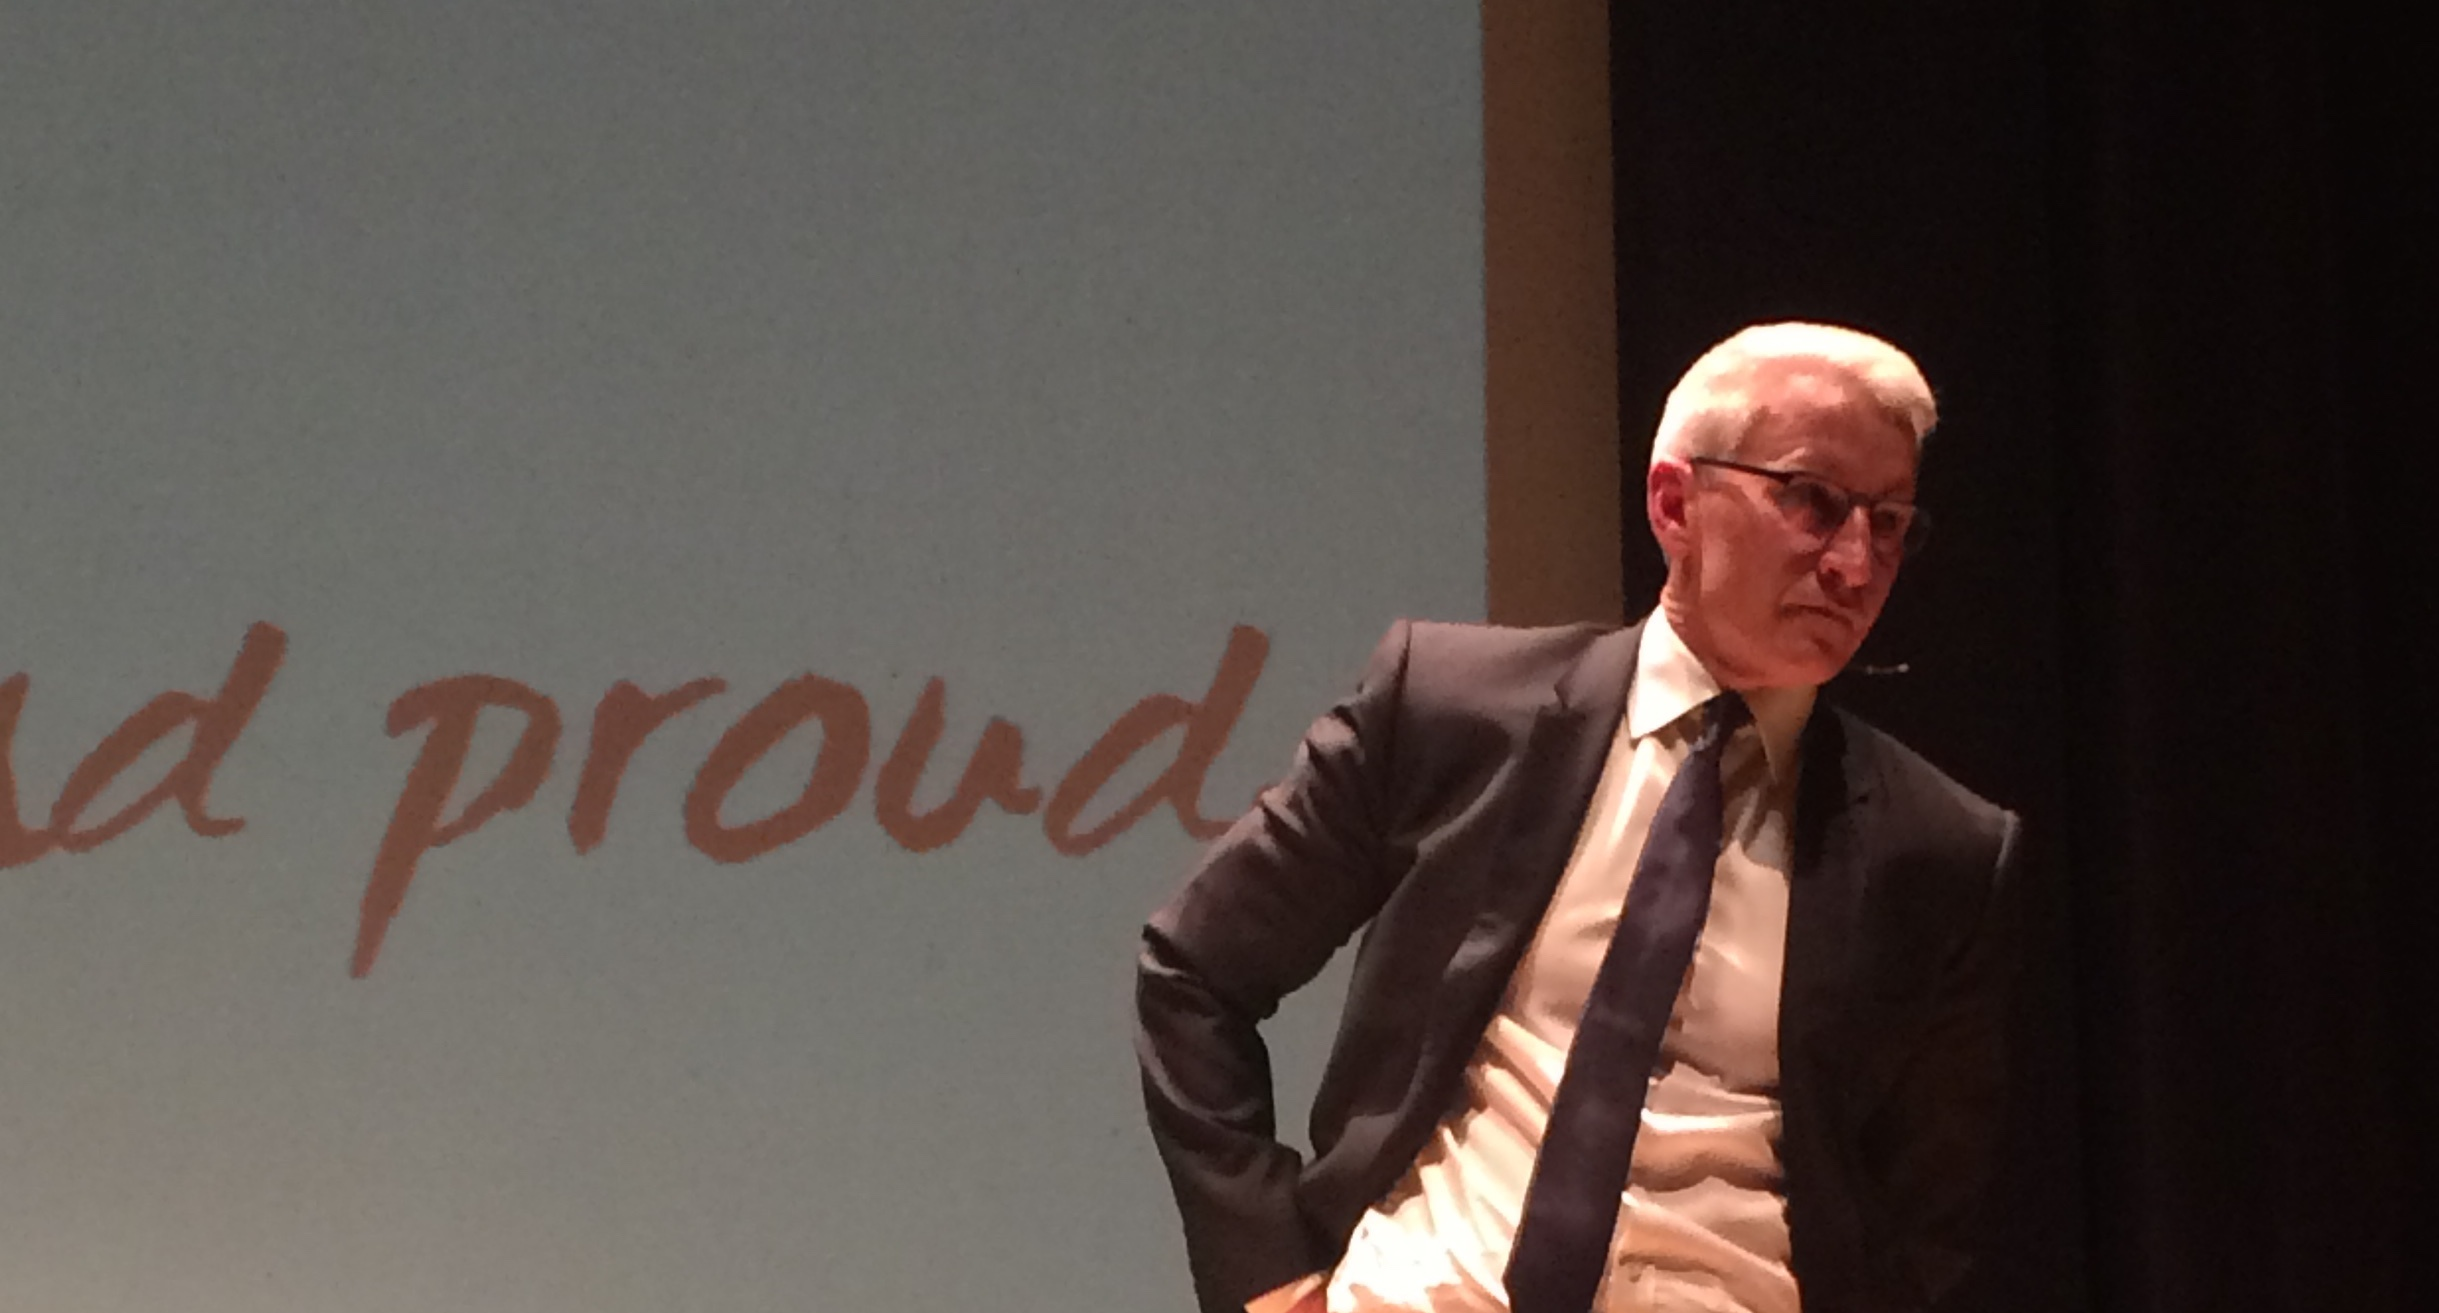 Anderson Cooper at the Skeggs lecture. Photo by Gabby Fellows/ The Jambar.